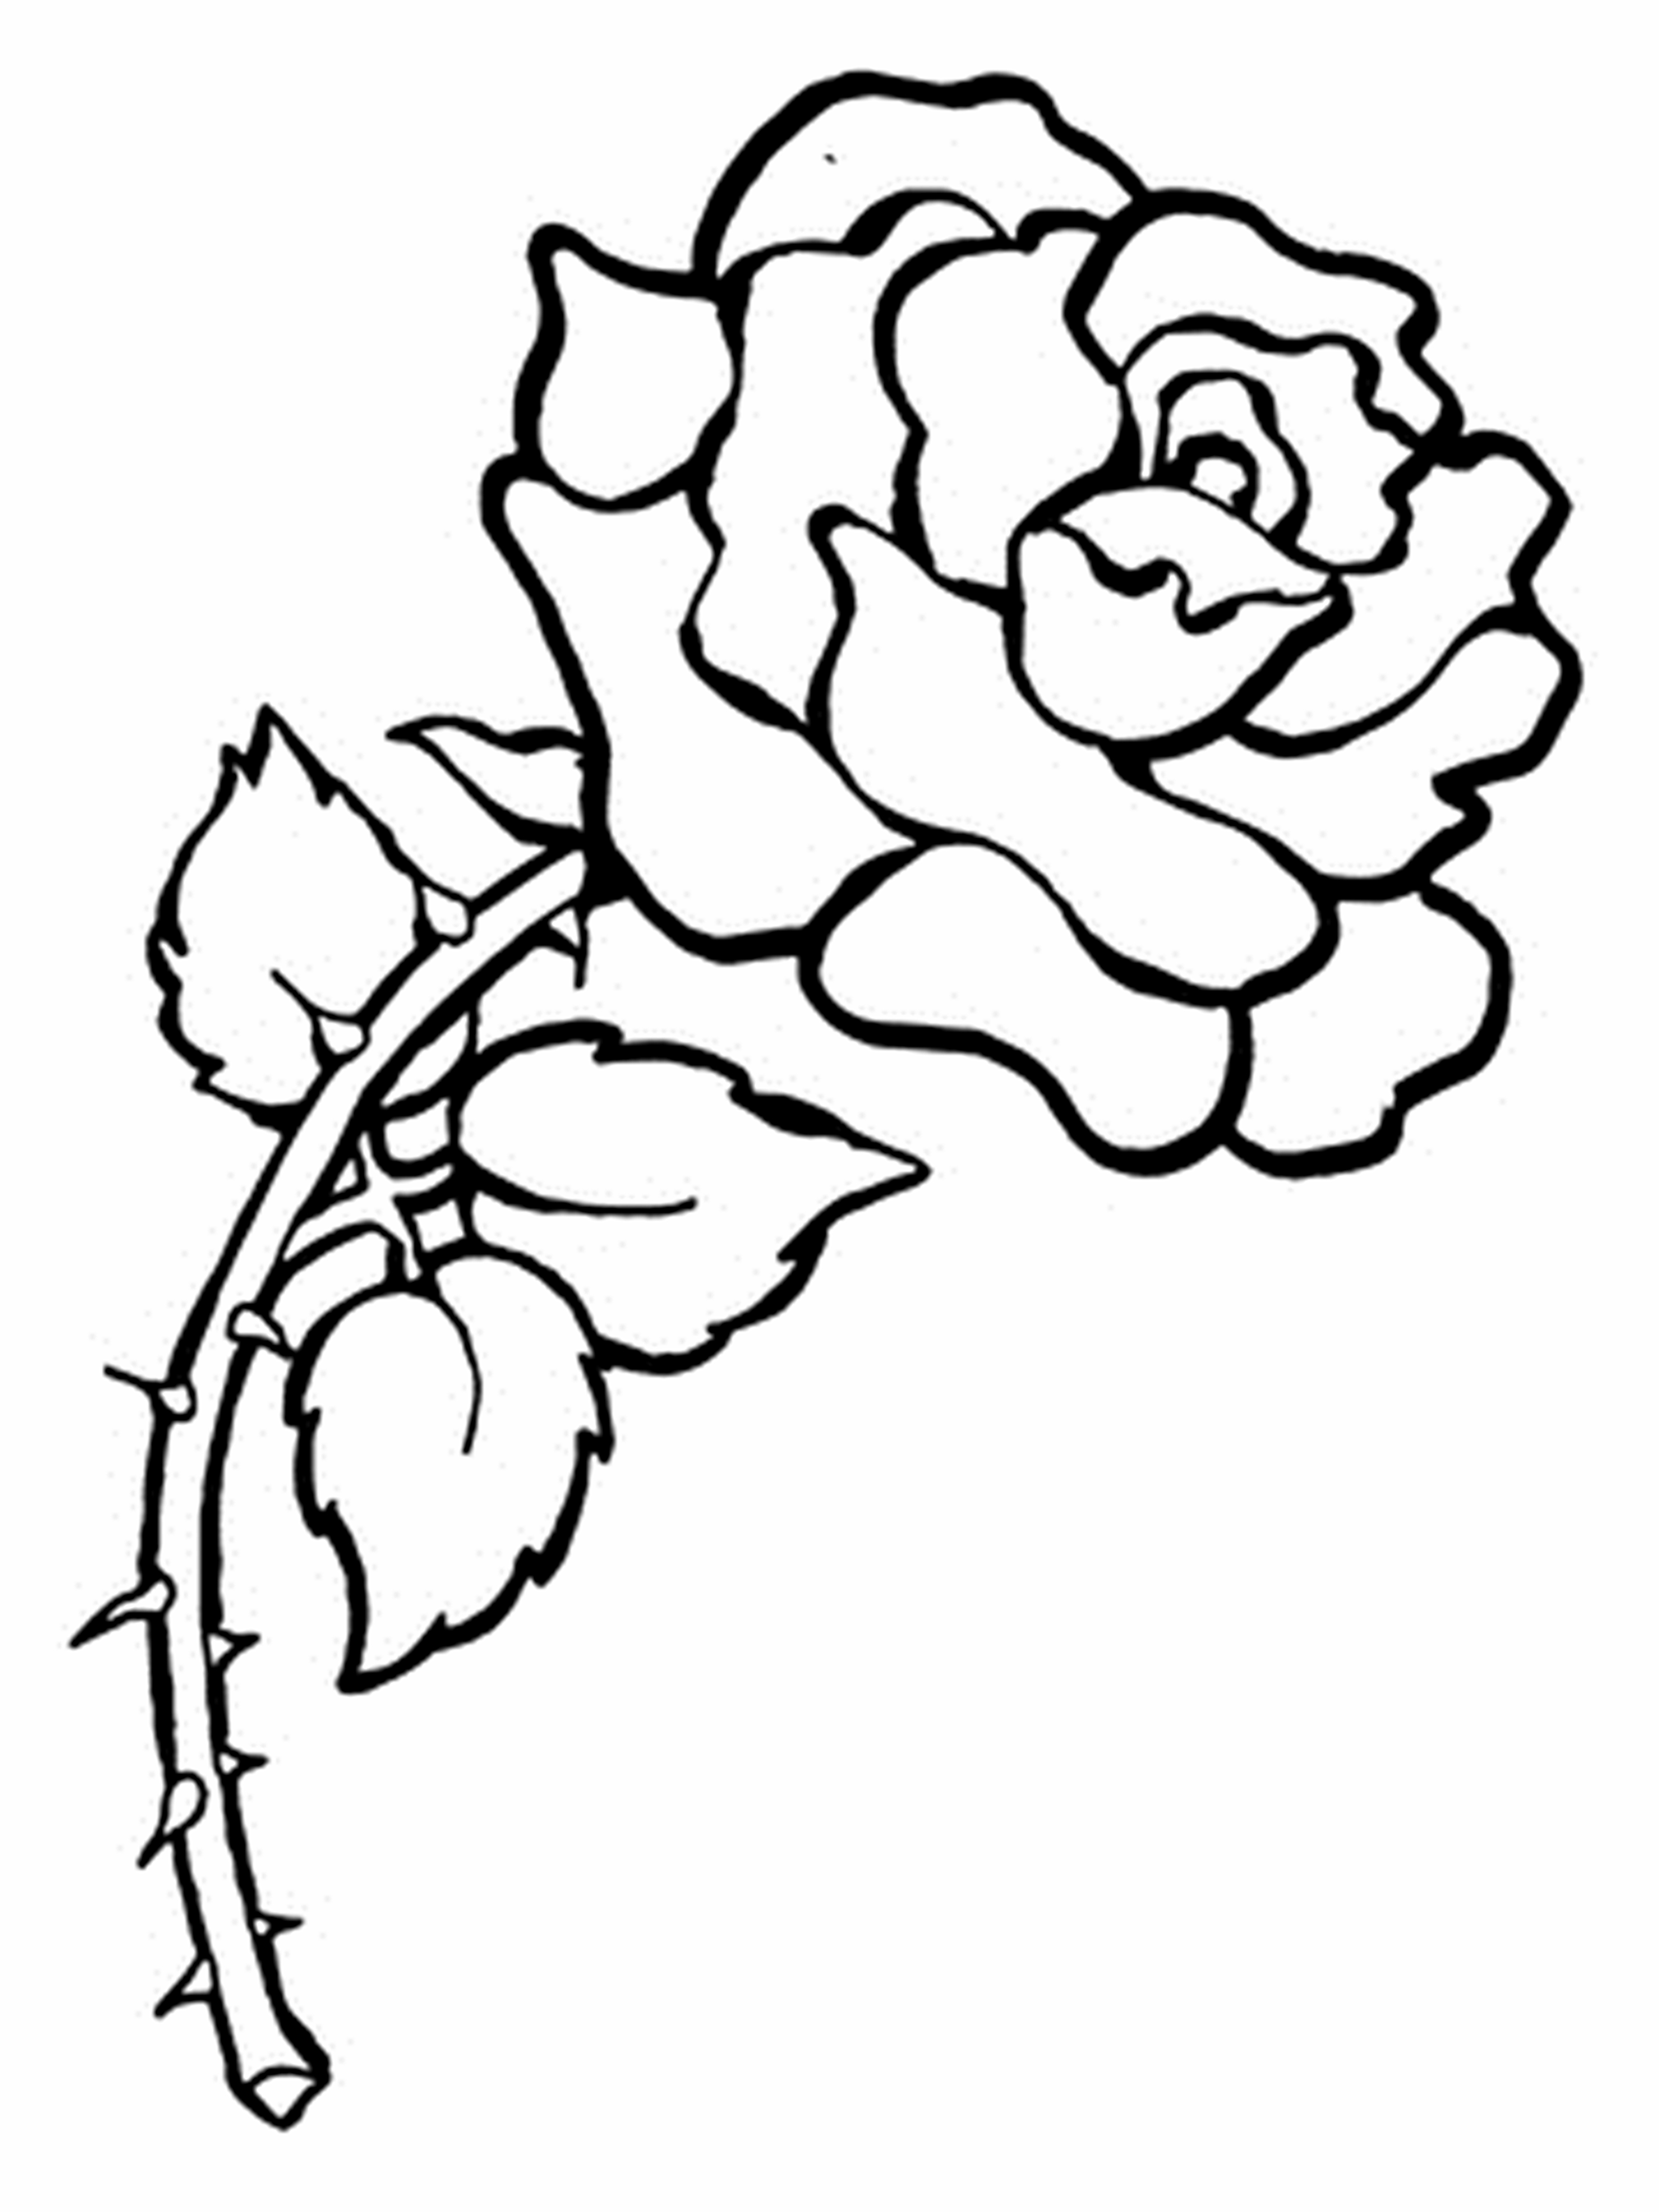 Flower Coloring Pages To Print Out at GetDrawings.com | Free ...